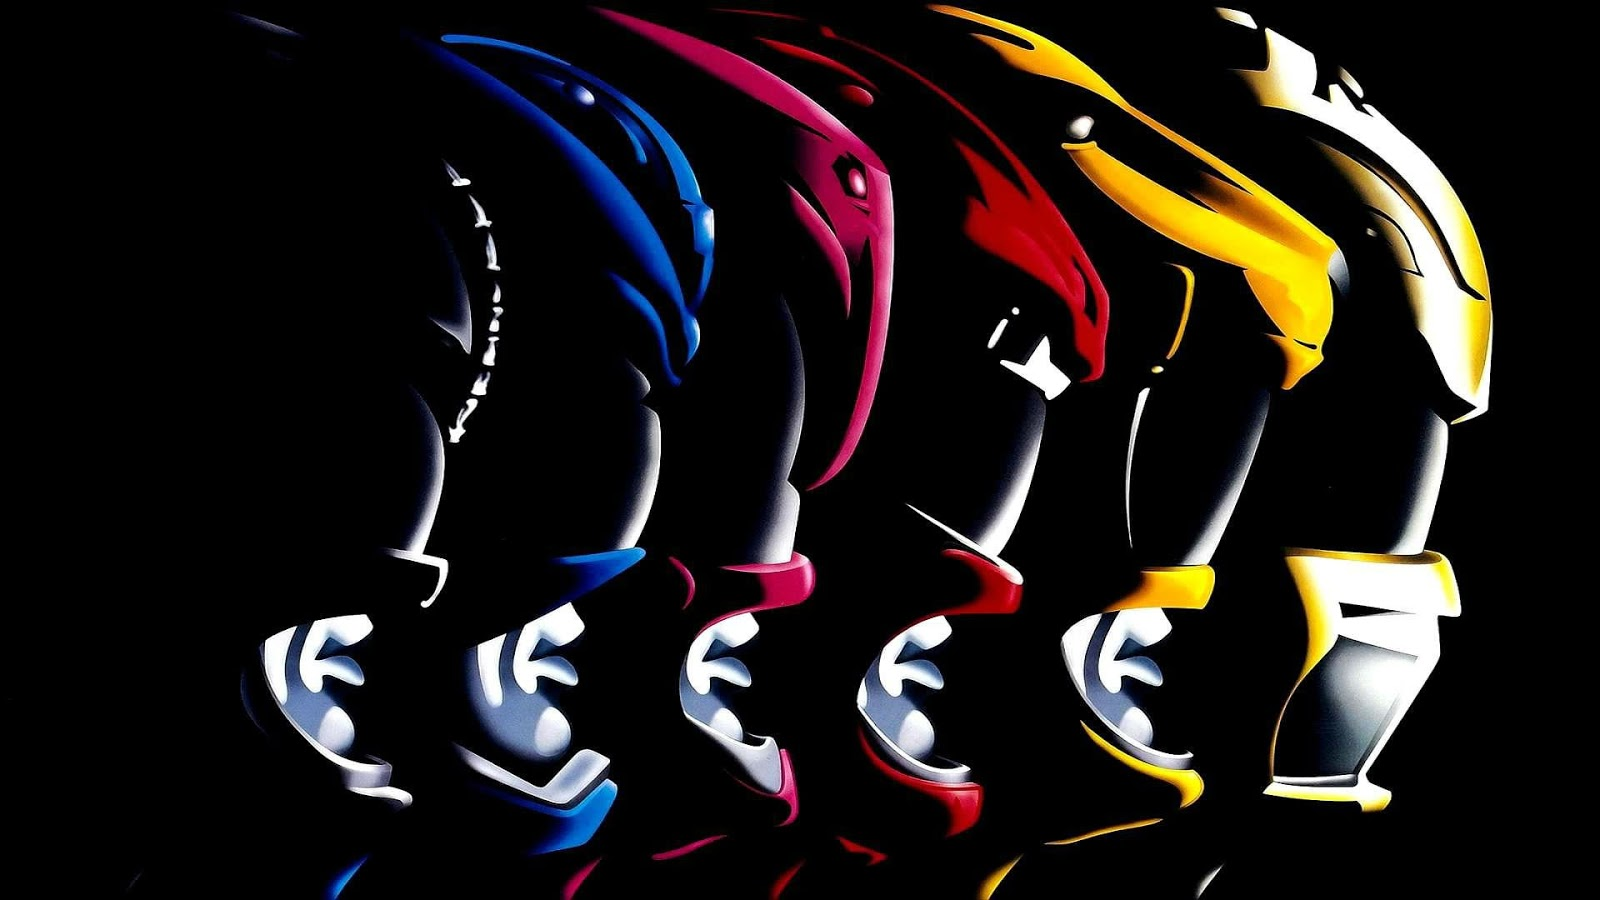 200 power ranger wallpaper - photo #27